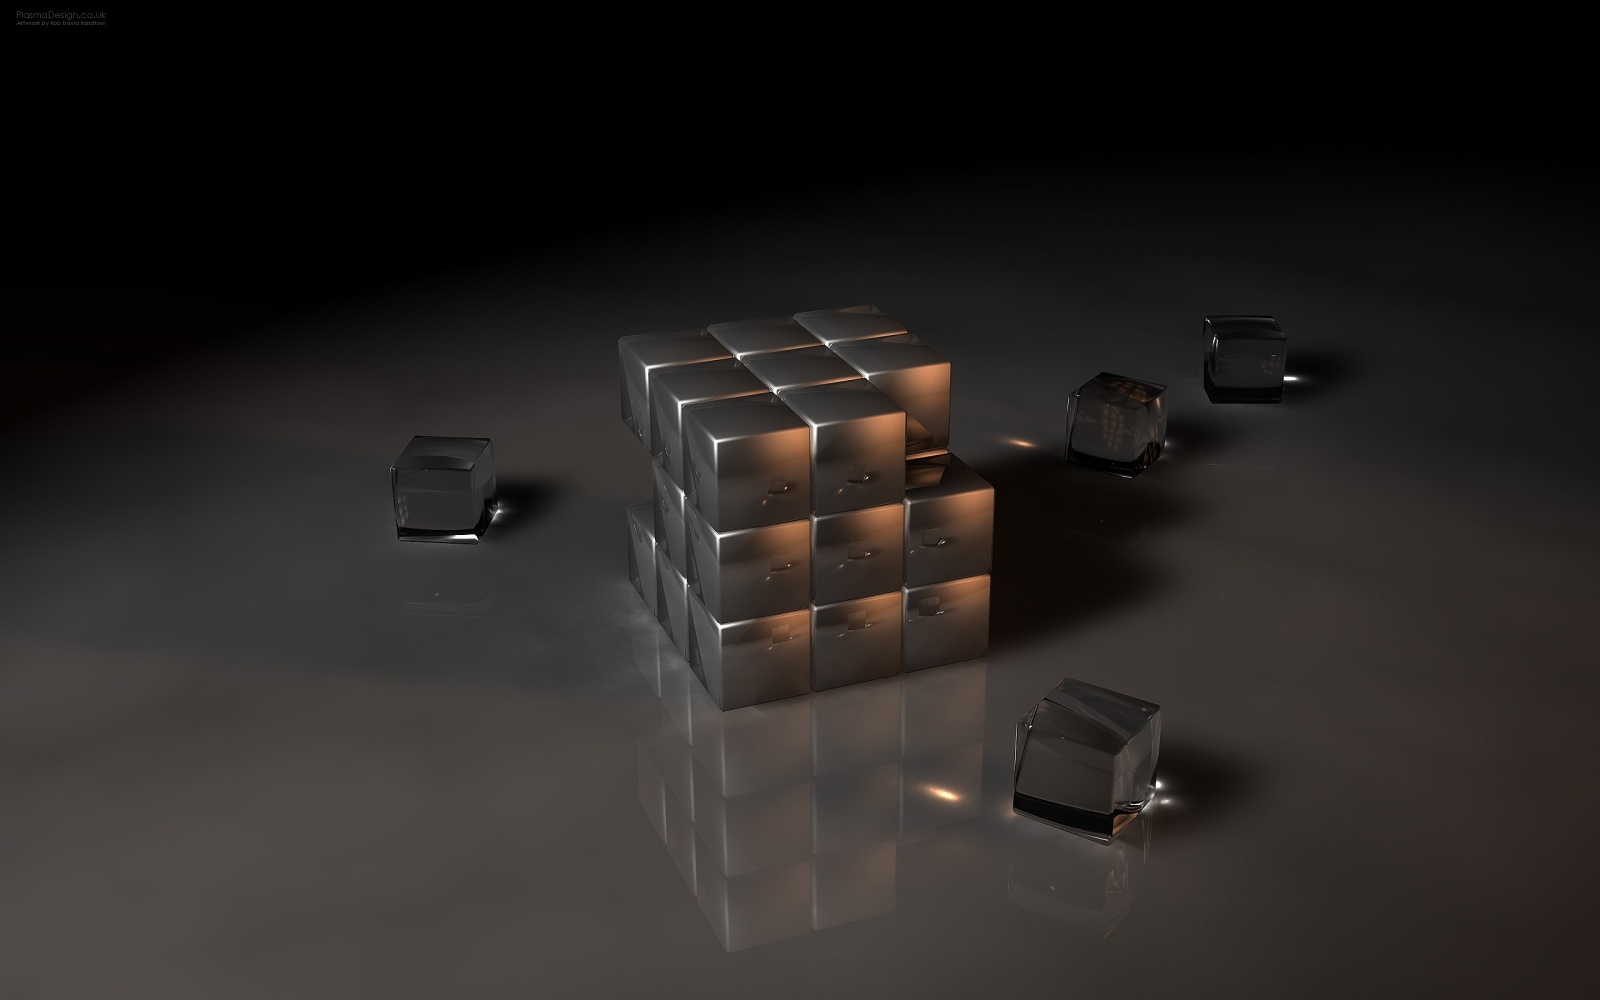 3D Cube Wallpapers   5582 1600x1000